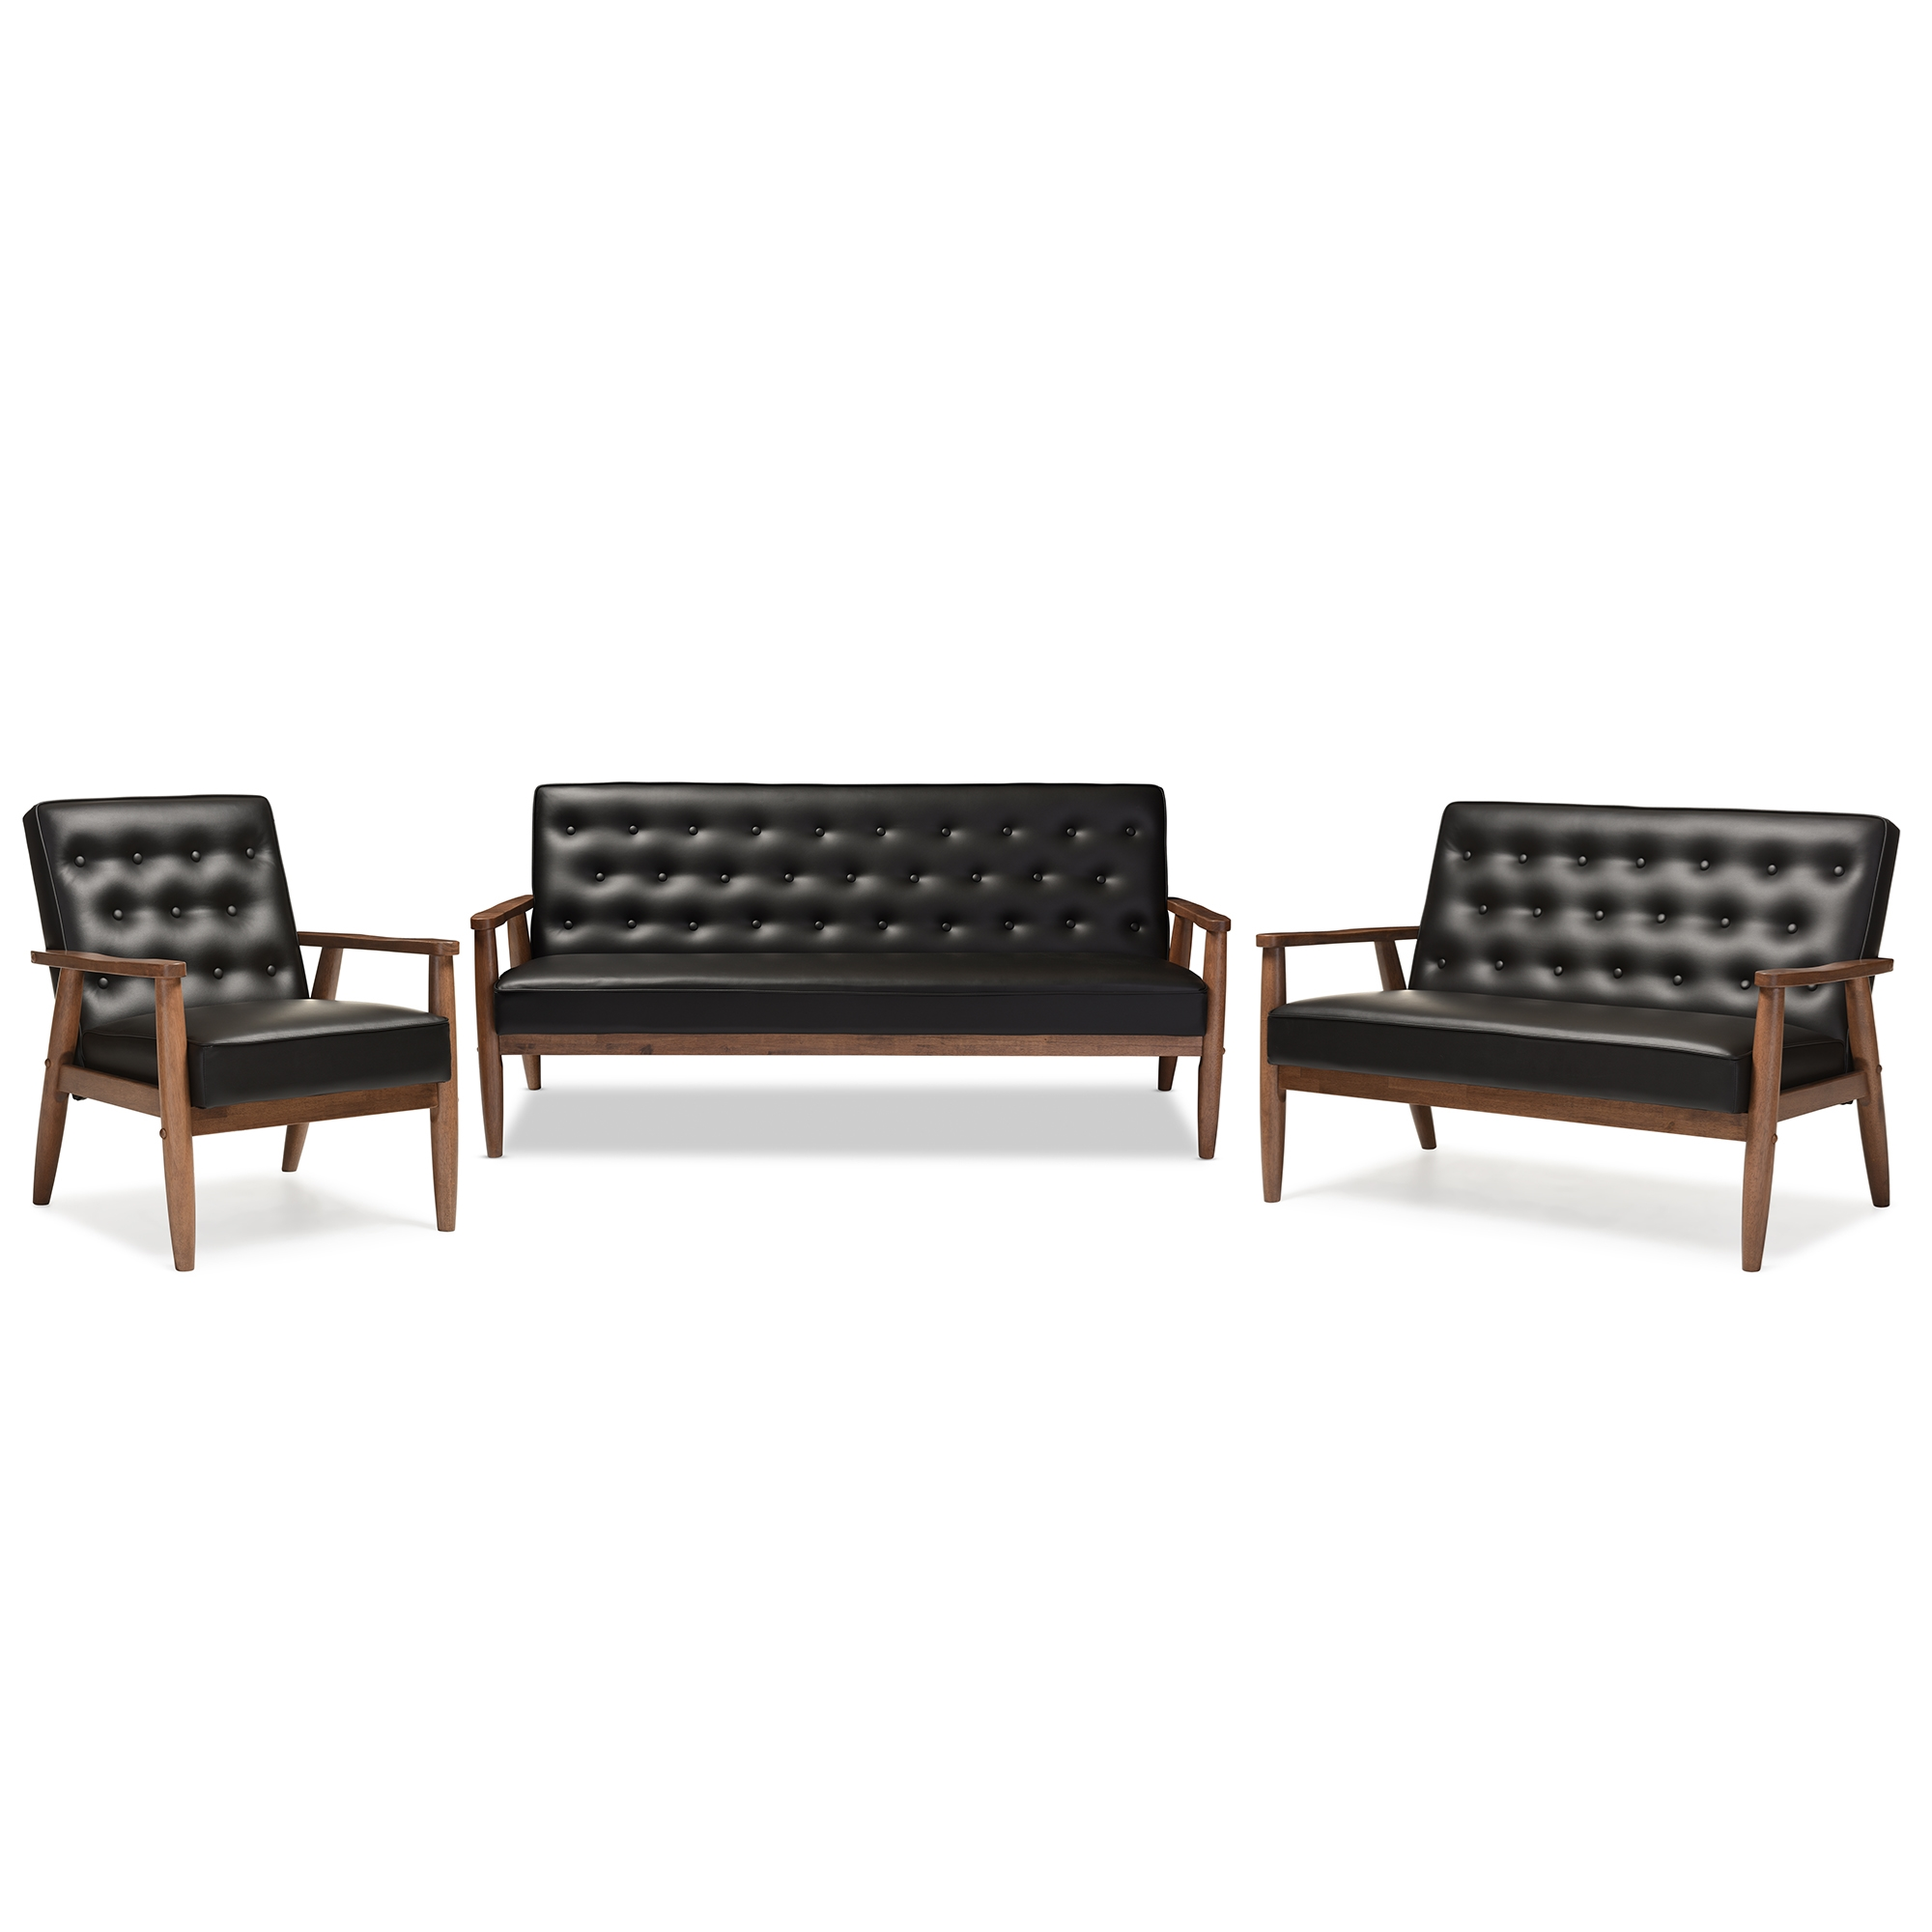 Baxton Studio Sorrento Mid Century Retro Modern Black Faux Leather  Upholstered Wooden 3 Piece Living Room Set